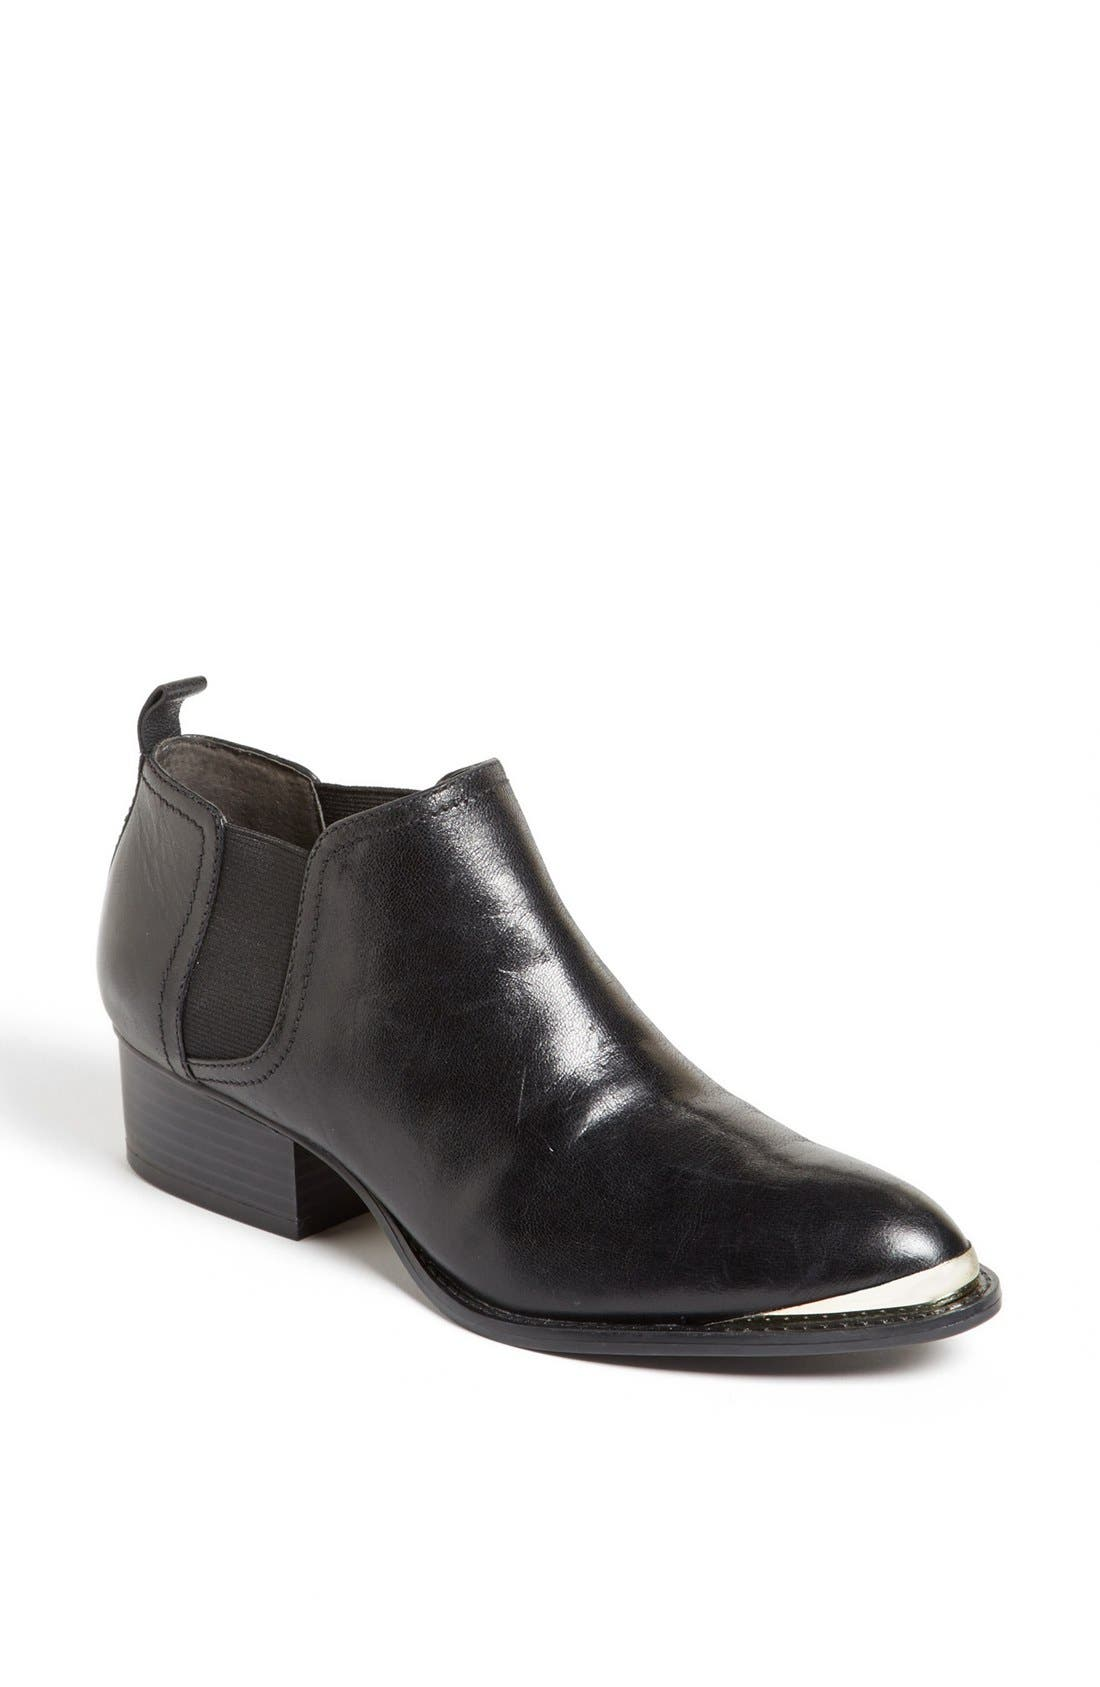 Alternate Image 1 Selected - Enzo Angiolini 'Austan' Bootie